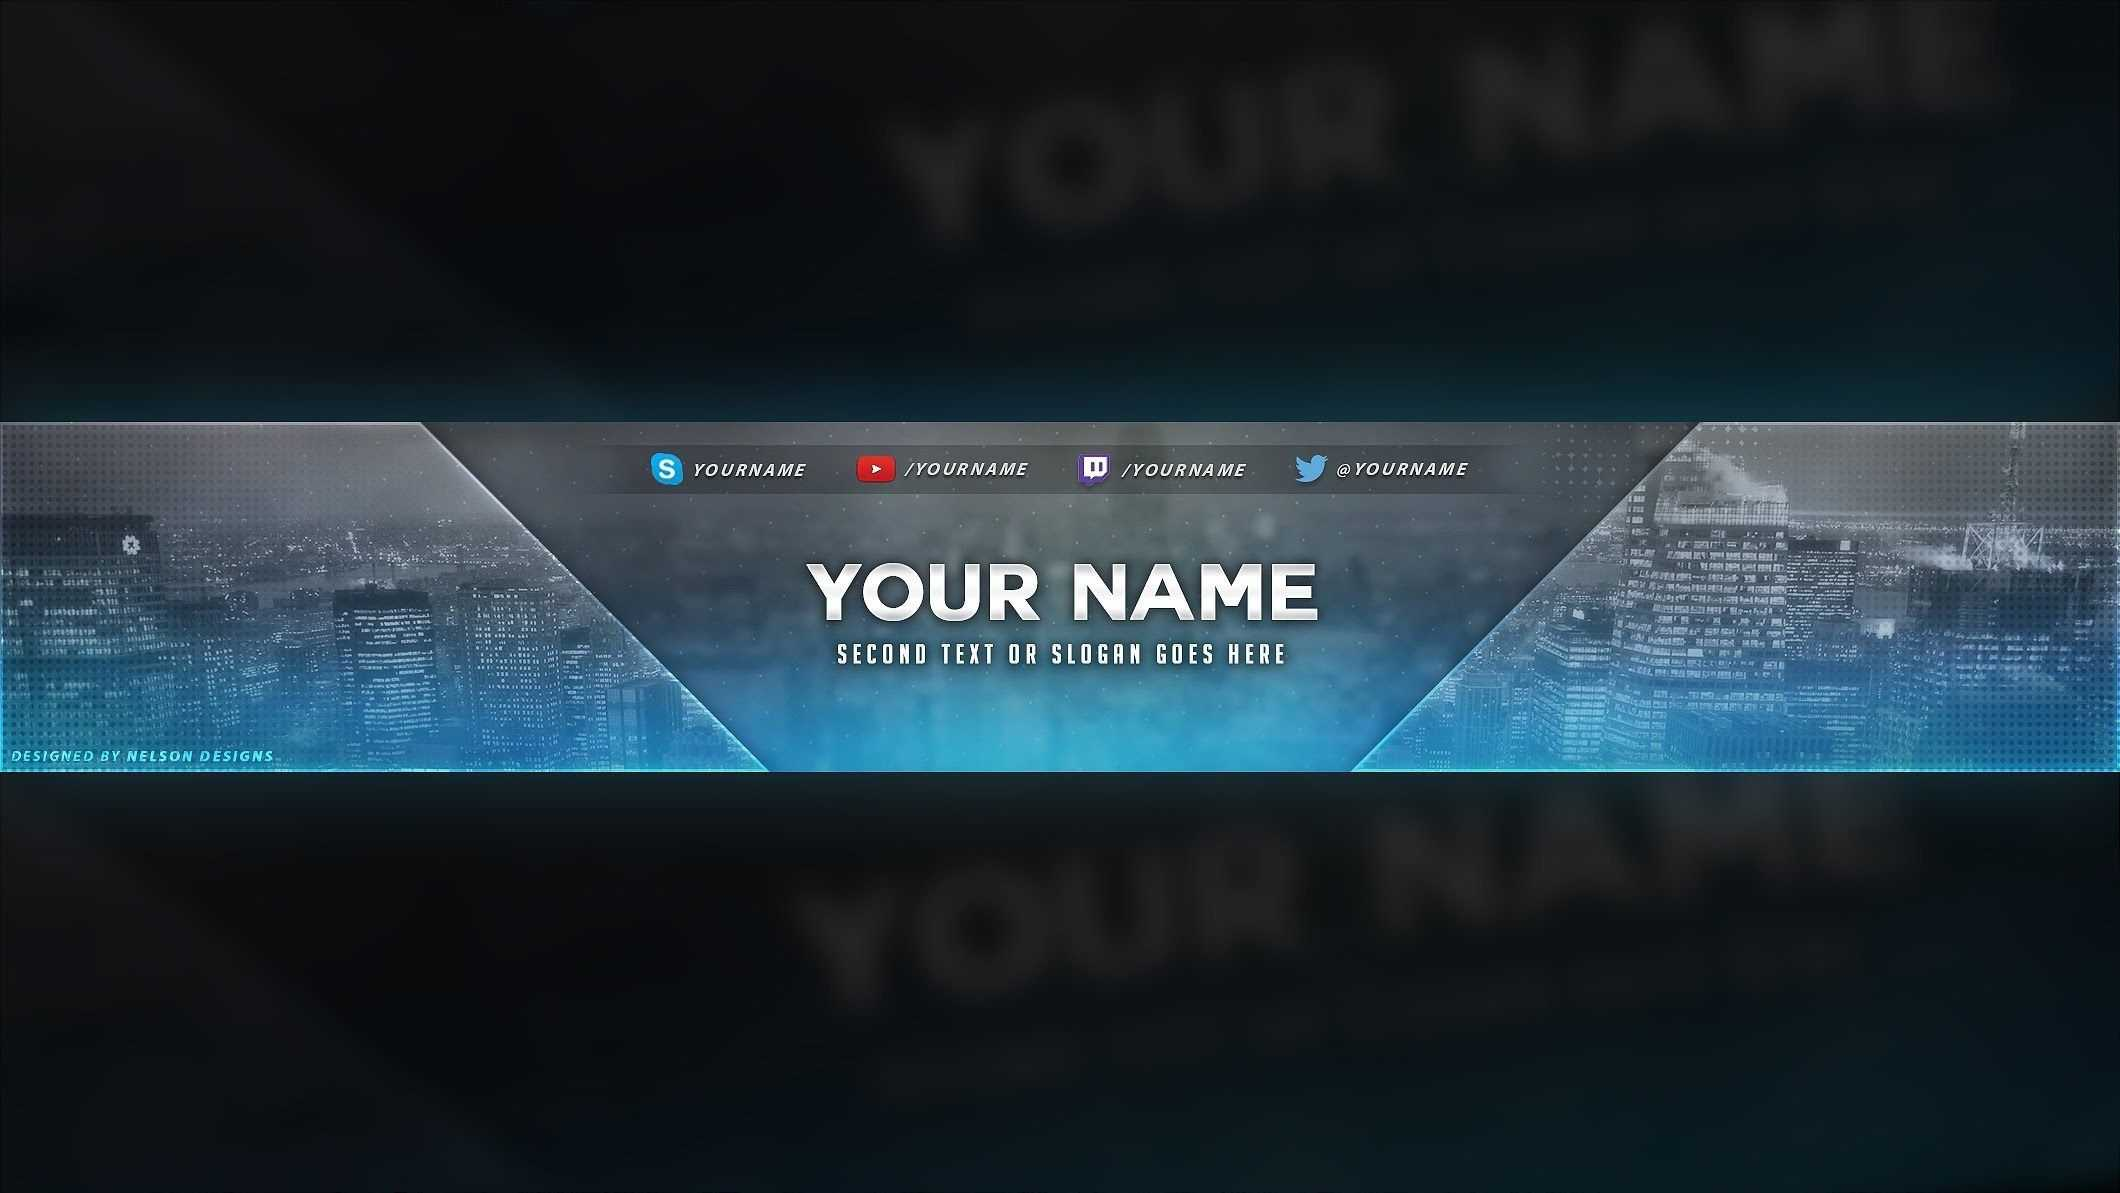 4 Free Youtube Banner Psd Template Designs - Social Media Regarding Youtube Banners Template